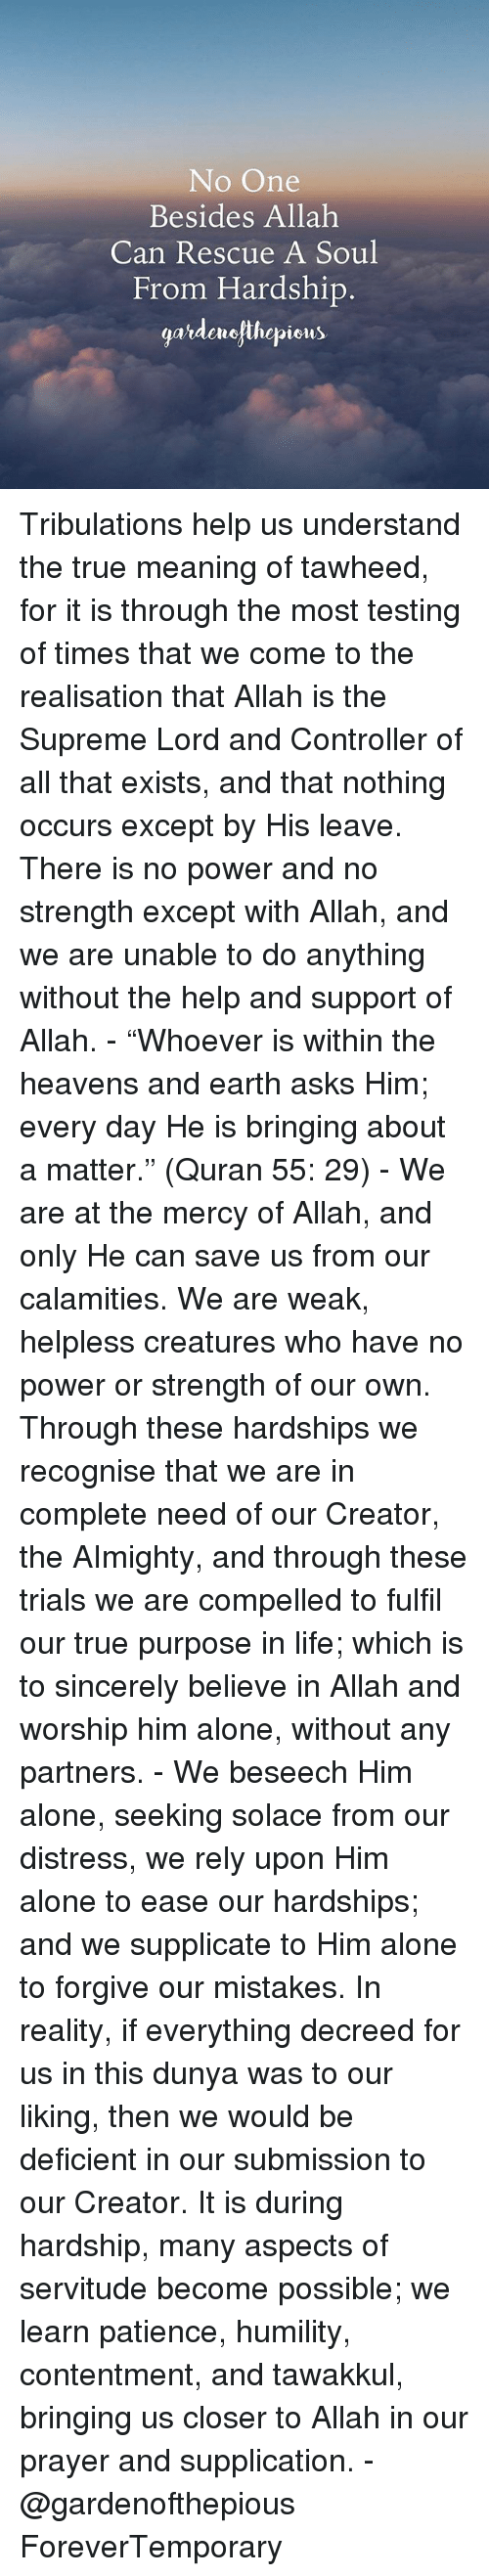 """Being Alone, Life, and Memes: No One  Besides Allah  Can Rescue A Soul  From Hardship  gardeurofthepions Tribulations help us understand the true meaning of tawheed, for it is through the most testing of times that we come to the realisation that Allah is the Supreme Lord and Controller of all that exists, and that nothing occurs except by His leave. There is no power and no strength except with Allah, and we are unable to do anything without the help and support of Allah. - """"Whoever is within the heavens and earth asks Him; every day He is bringing about a matter."""" (Quran 55: 29) - We are at the mercy of Allah, and only He can save us from our calamities. We are weak, helpless creatures who have no power or strength of our own. Through these hardships we recognise that we are in complete need of our Creator, the AImighty, and through these trials we are compelled to fulfil our true purpose in life; which is to sincerely believe in Allah and worship him alone, without any partners. - We beseech Him alone, seeking solace from our distress, we rely upon Him alone to ease our hardships; and we supplicate to Him alone to forgive our mistakes. In reality, if everything decreed for us in this dunya was to our liking, then we would be deficient in our submission to our Creator. It is during hardship, many aspects of servitude become possible; we learn patience, humility, contentment, and tawakkul, bringing us closer to Allah in our prayer and supplication. - @gardenofthepious ForeverTemporary"""